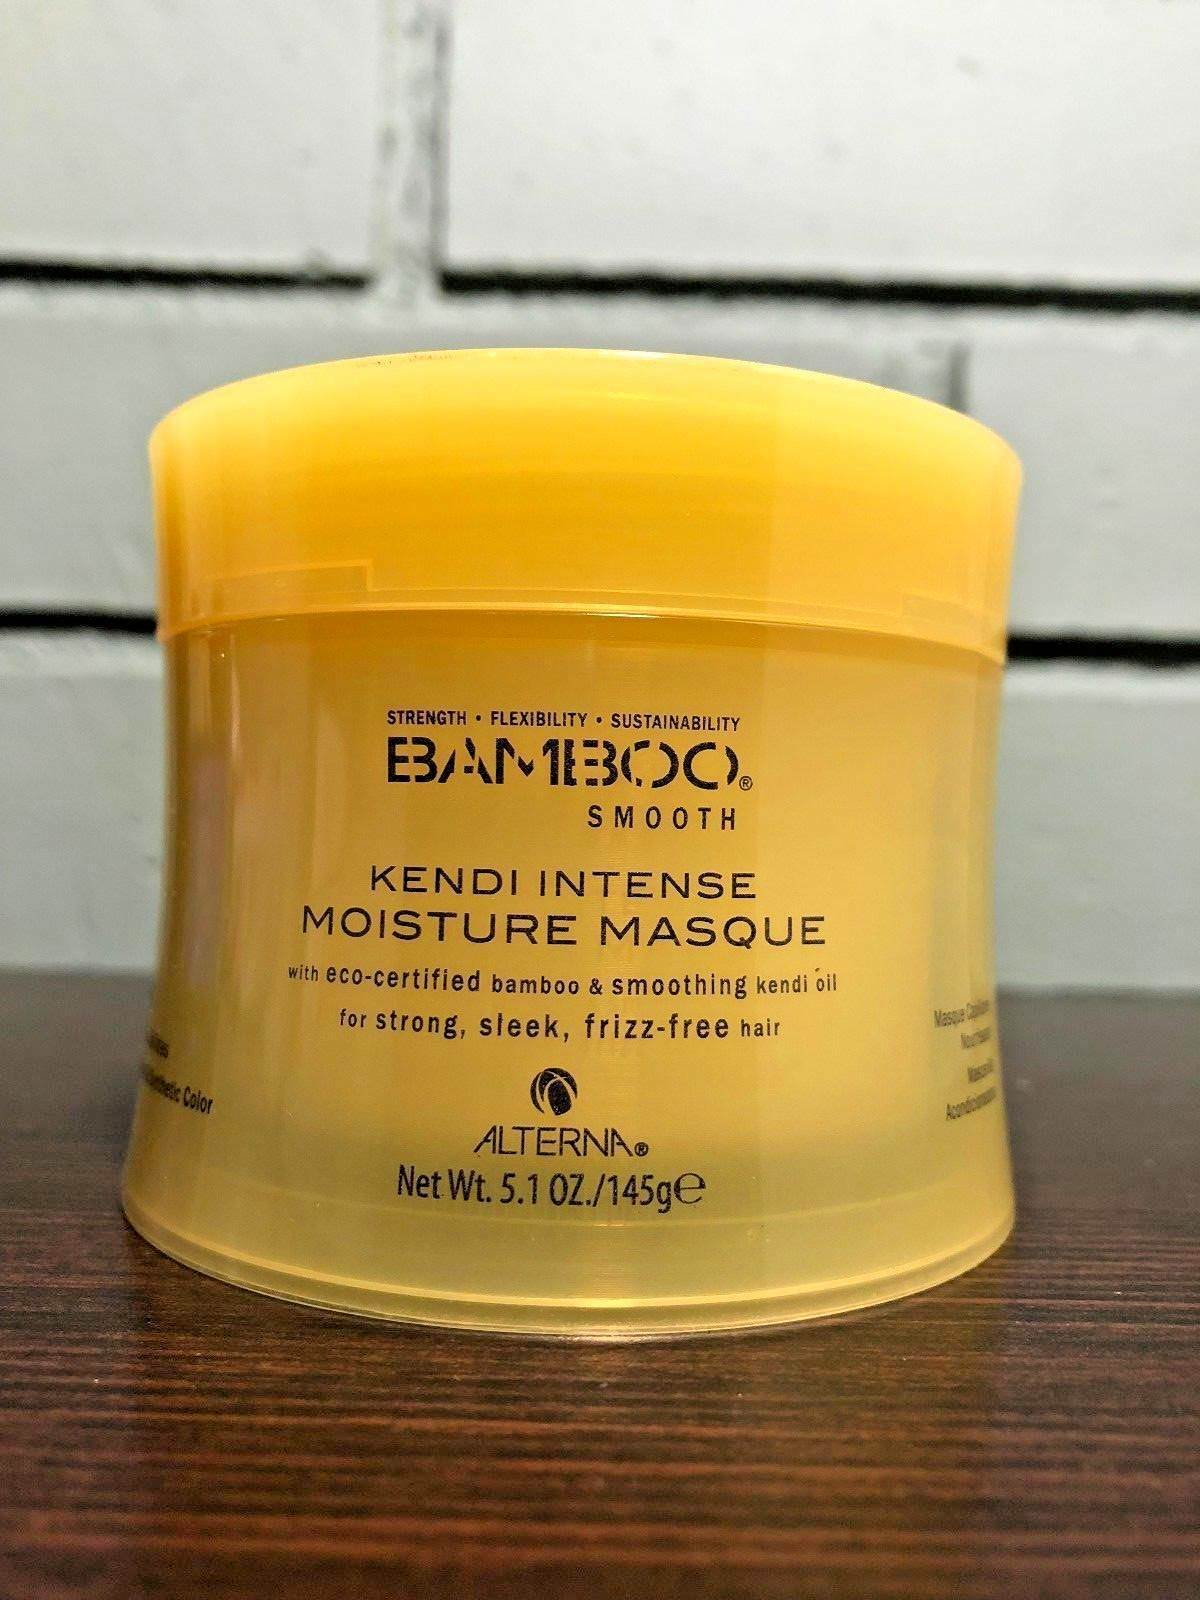 Alterna Bamboo Smooth Kendi Intense Moisture Masque 4.7oz - NEW & FRESH!